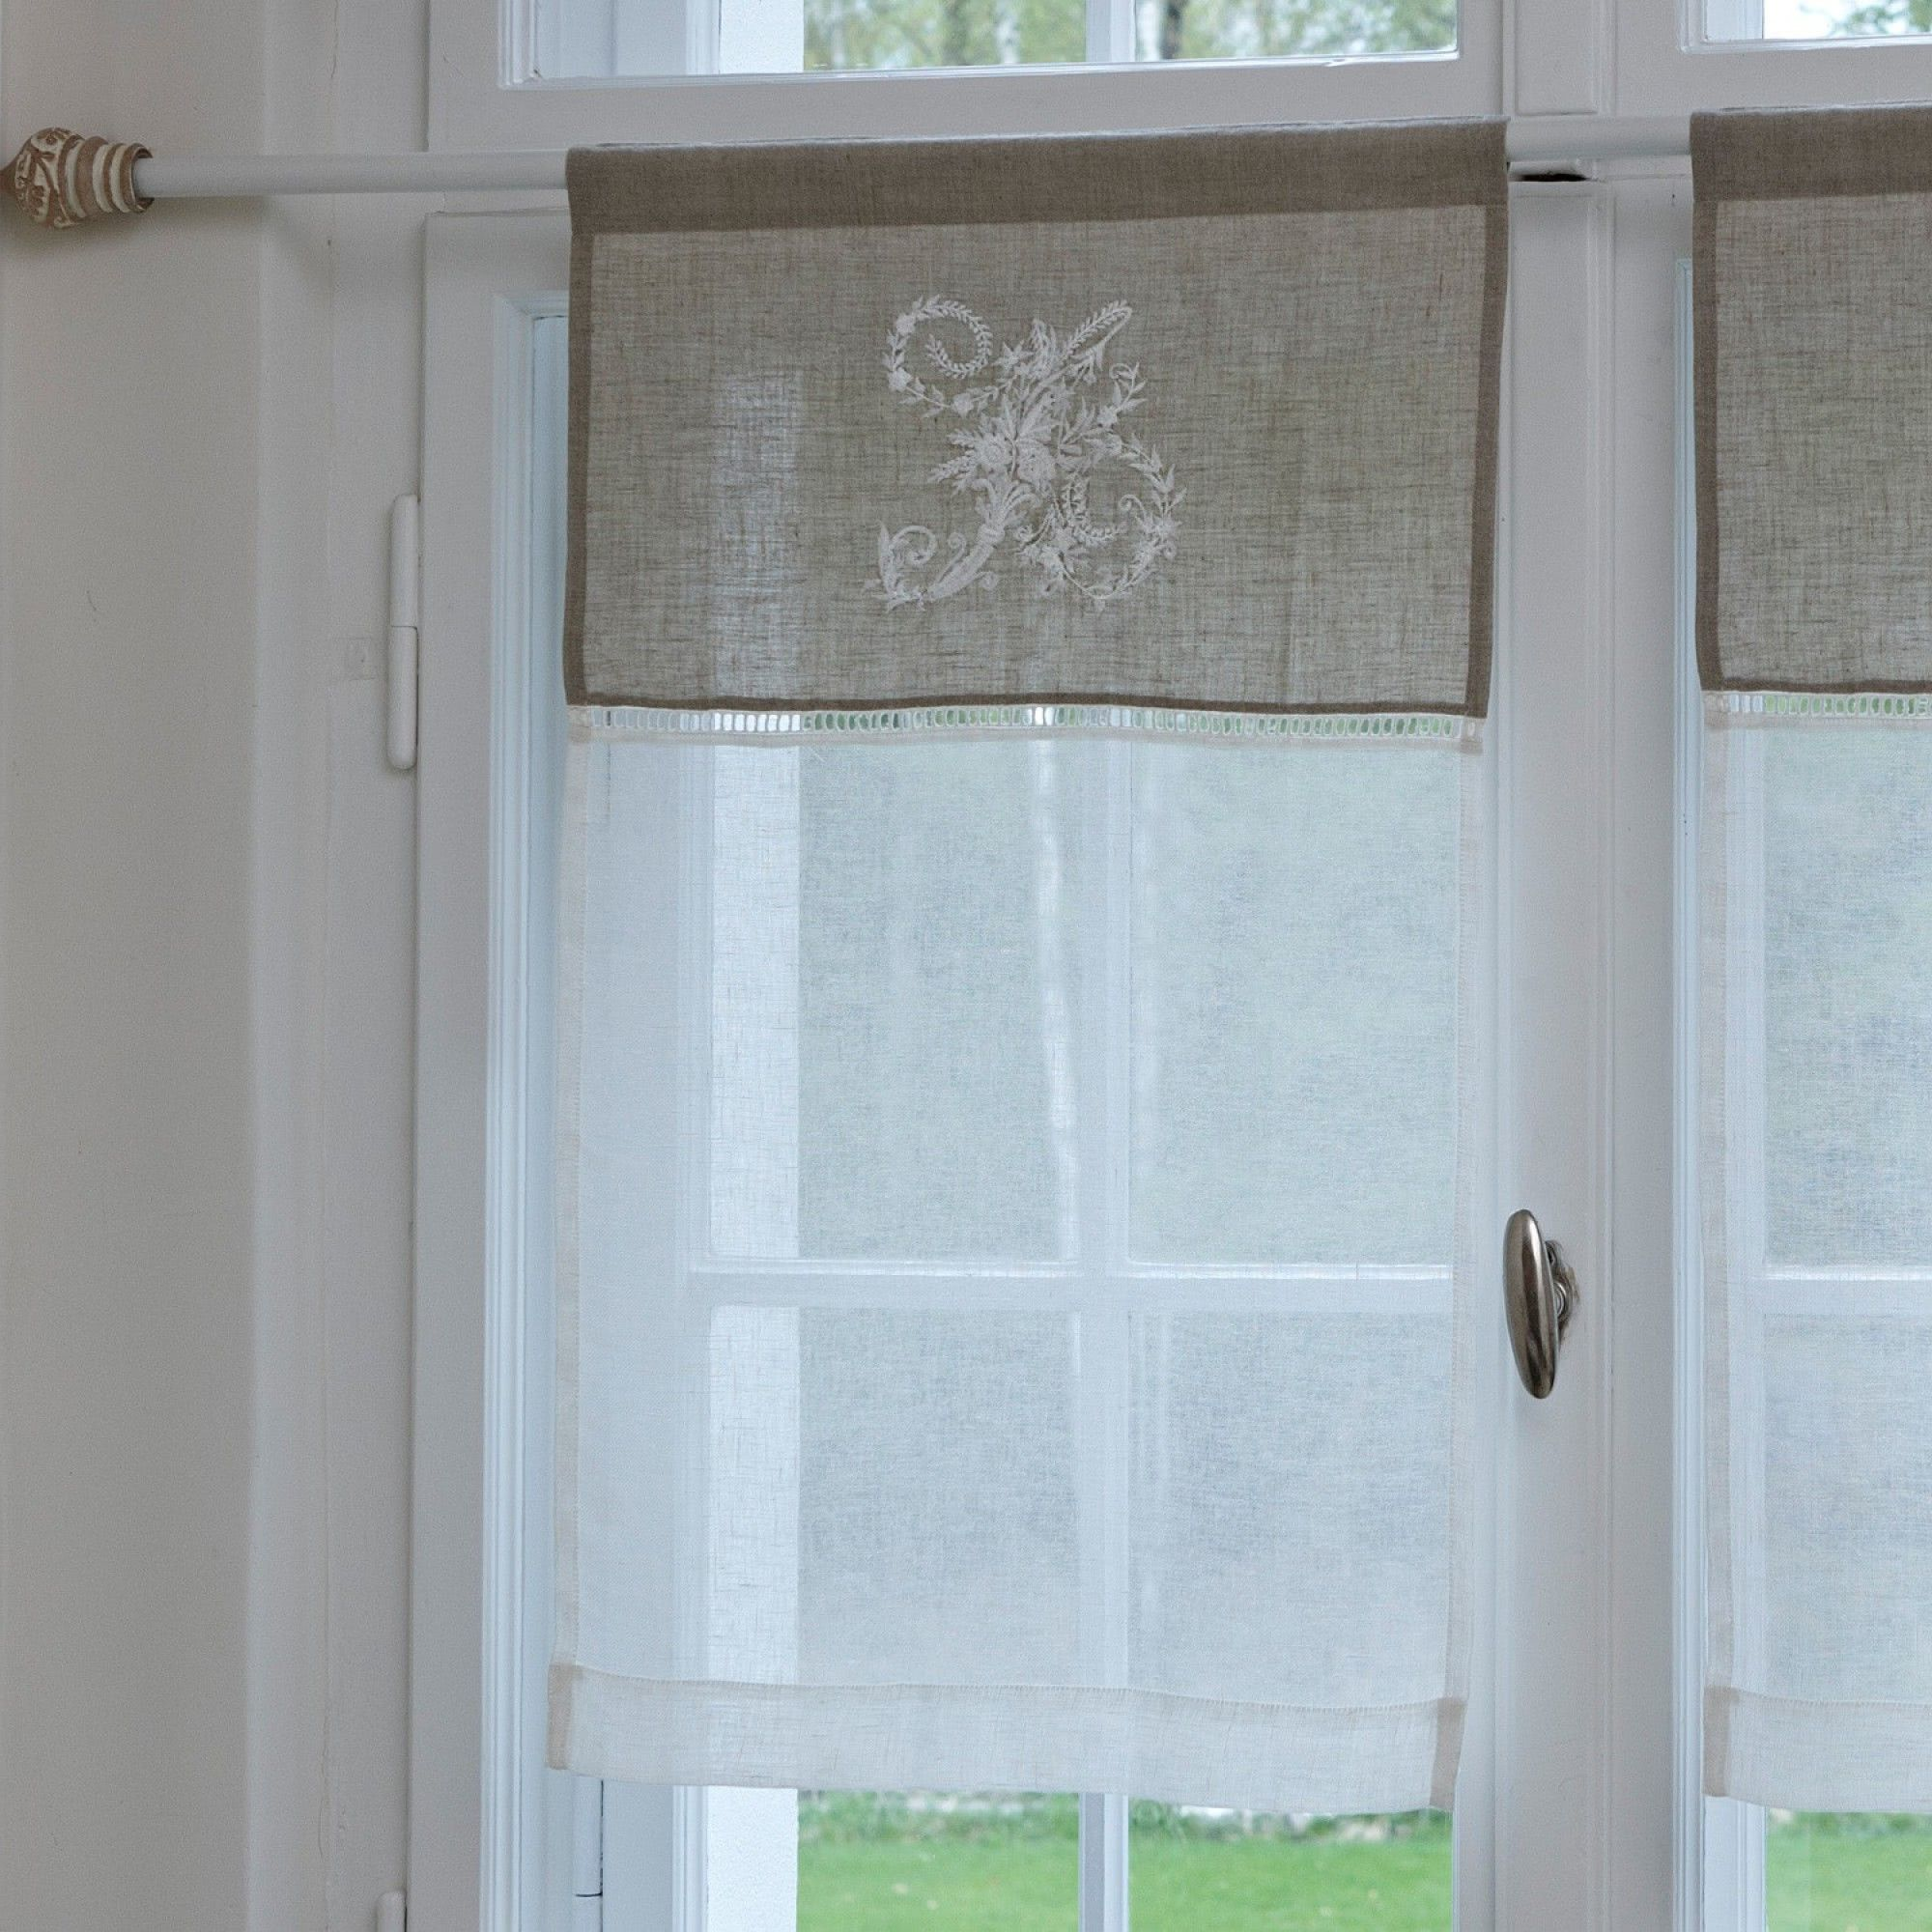 Pin By Andi Rahn On Kleine Projekte Cottage Curtains Diy Curtains Curtains With Blinds